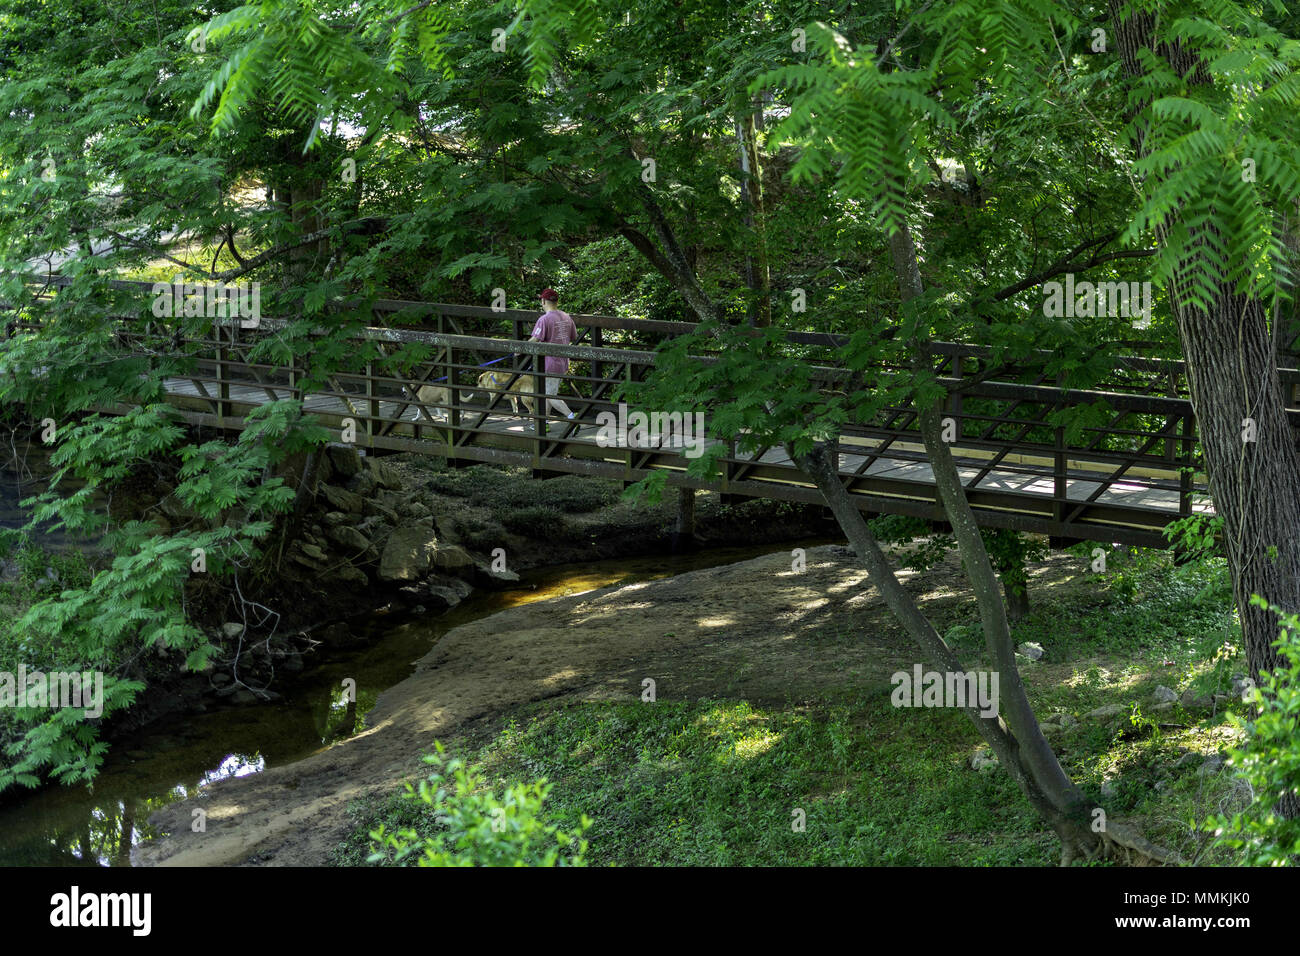 Tuscaloosa, Alabama, USA. 12th May, 2018. This man was taking his dogs for a walk along the Warrior River in Tuscaloosa, Alabama on Saturday, May 12th 2018. It was another beautiful morning with an expected high in the low 90's. Credit: Credit: /ZUMA Wire/Alamy Live News - Stock Image